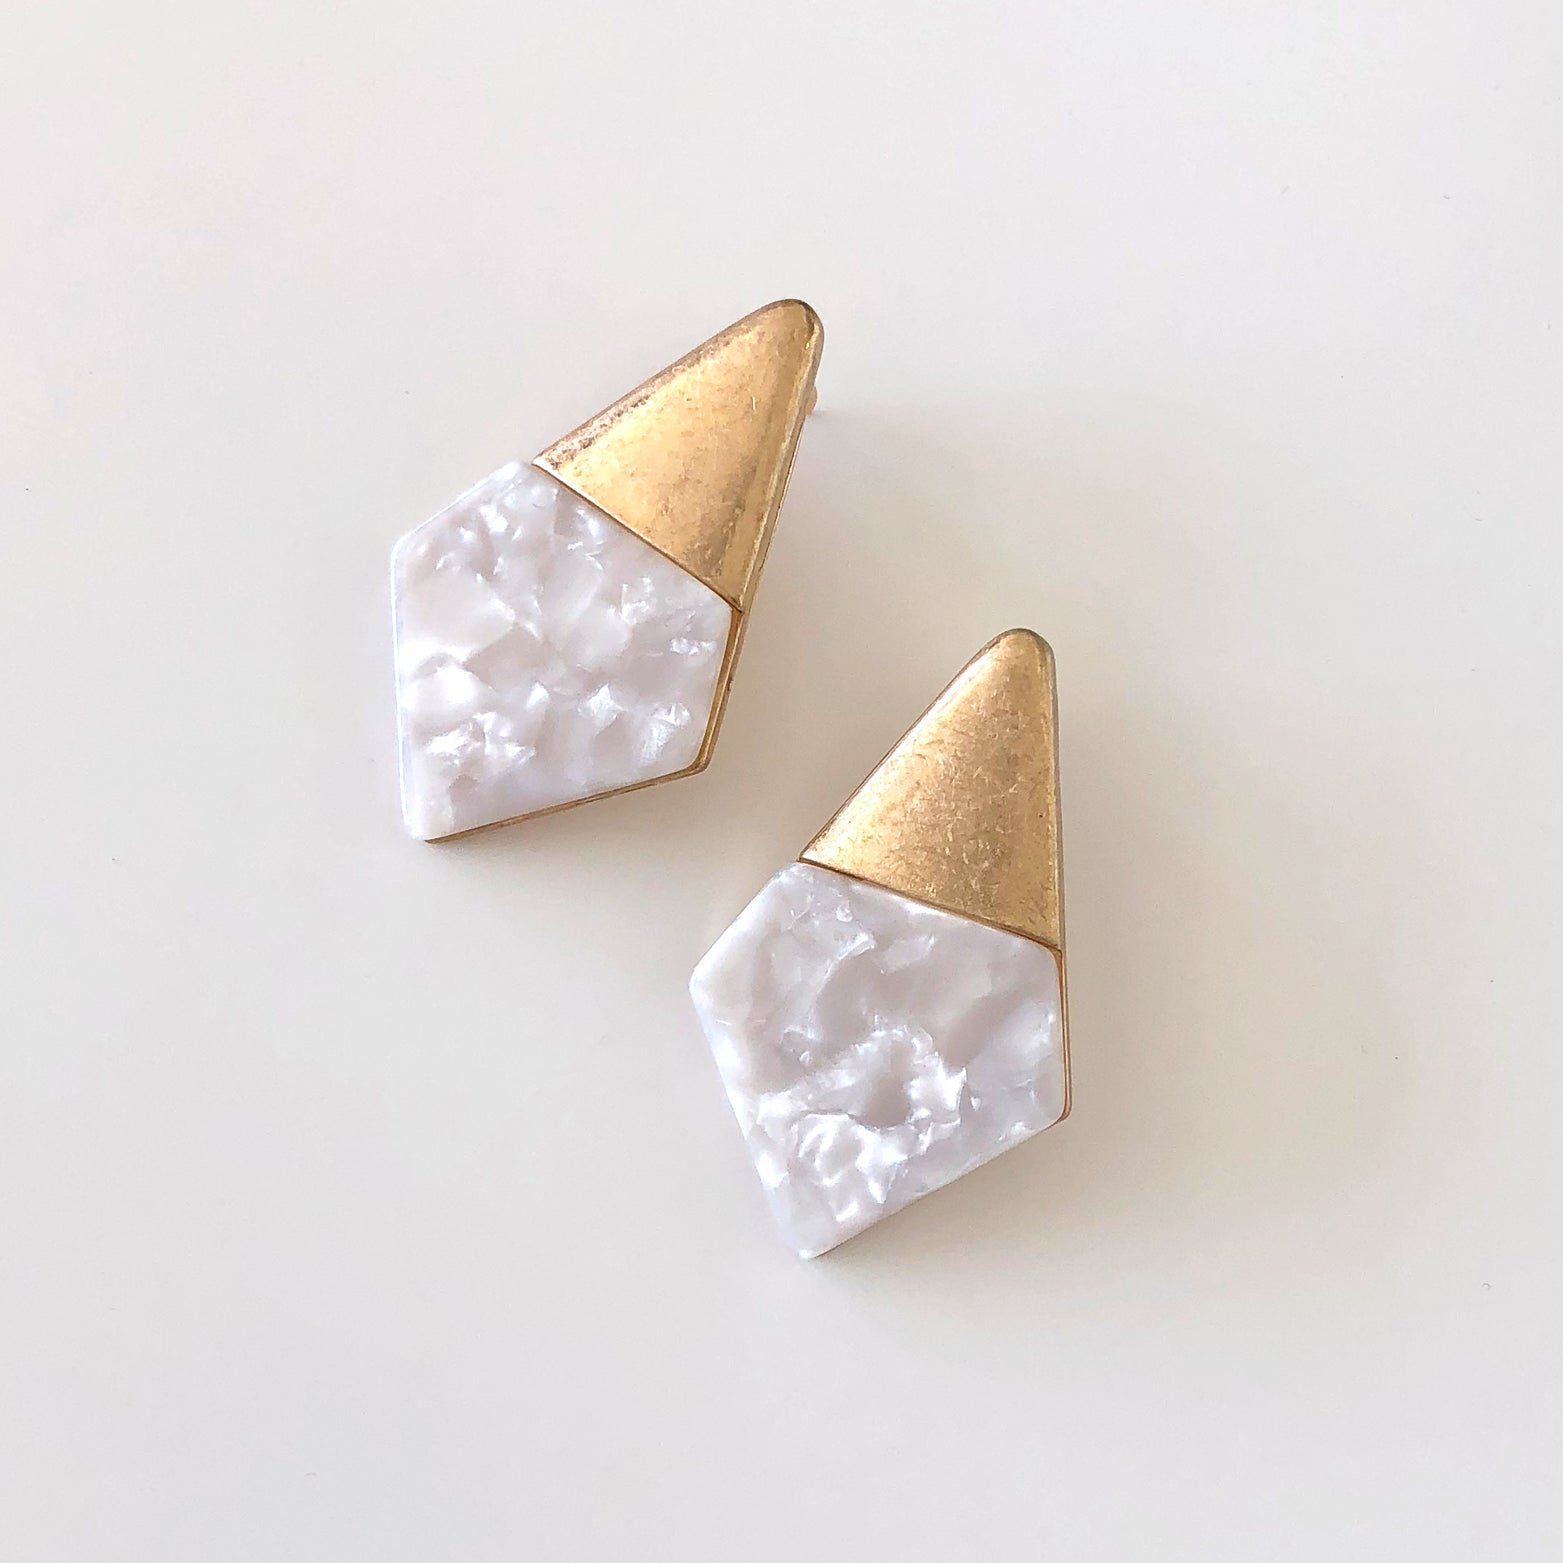 Geo White Acetate Earrings